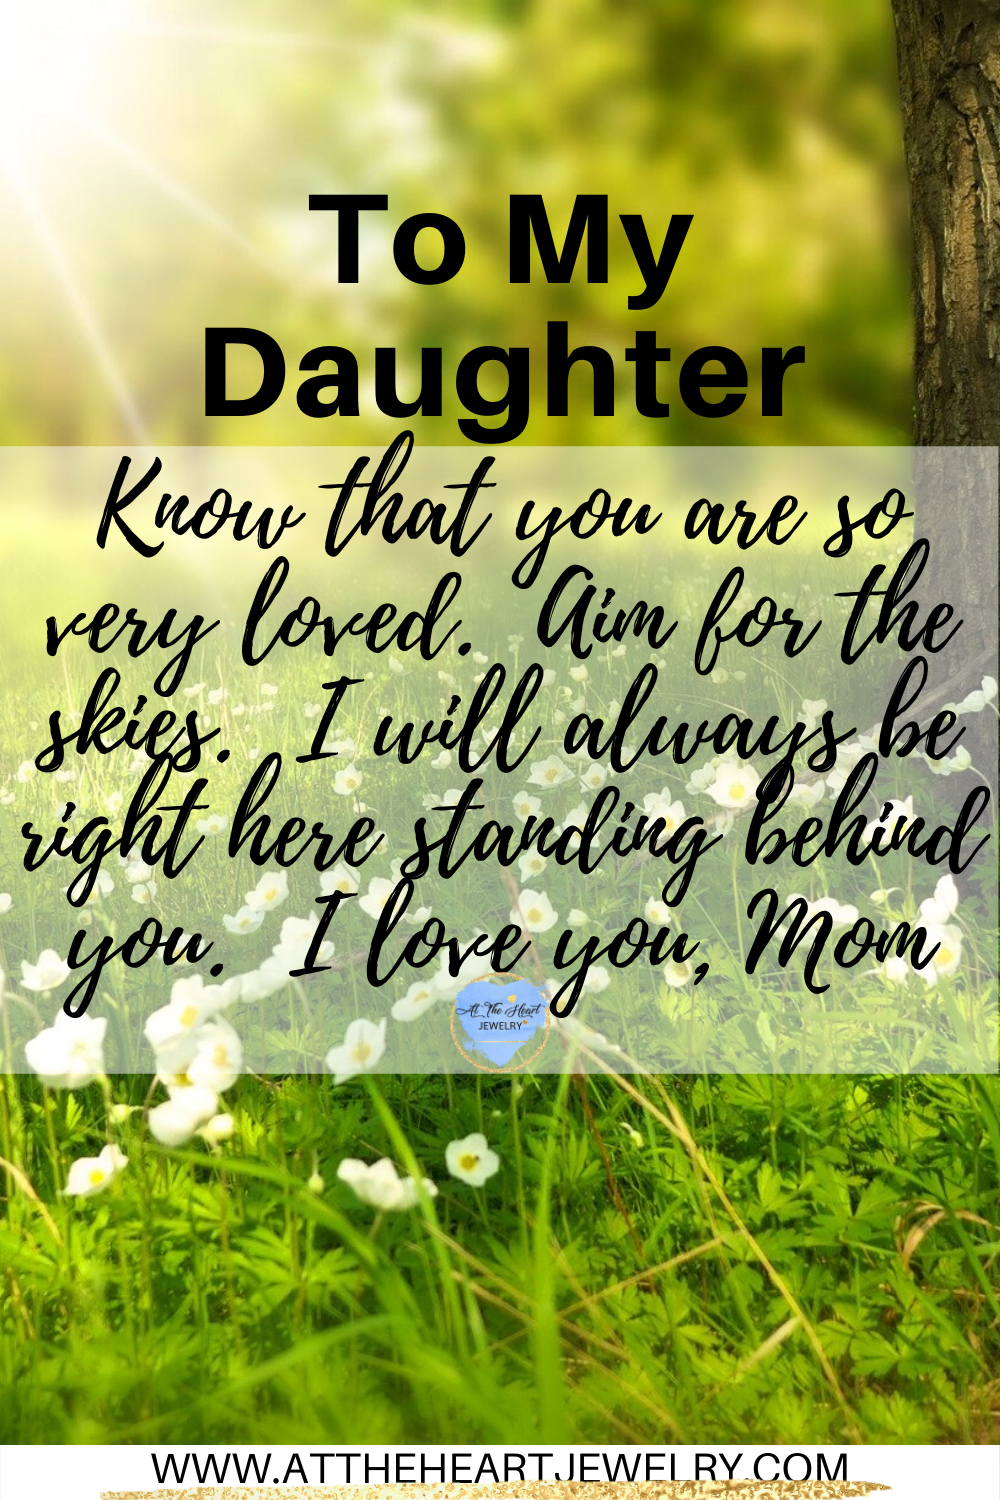 To My Daughter From Mom Birthday Message For Daughter Birthday Quotes For Daughter Daughter Love Quotes